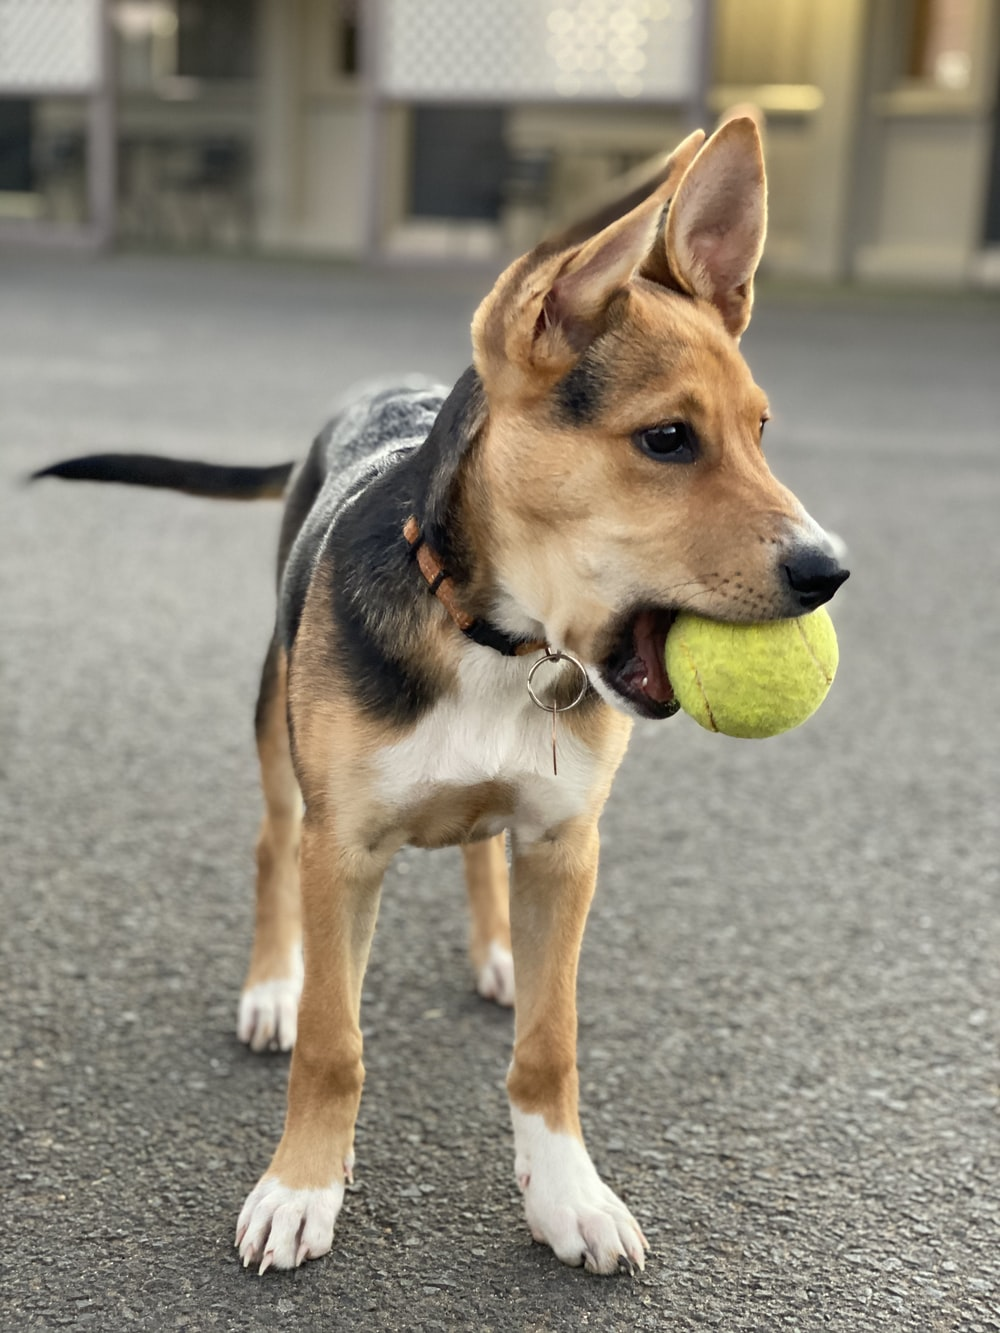 brown and black short coated dog biting tennis ball